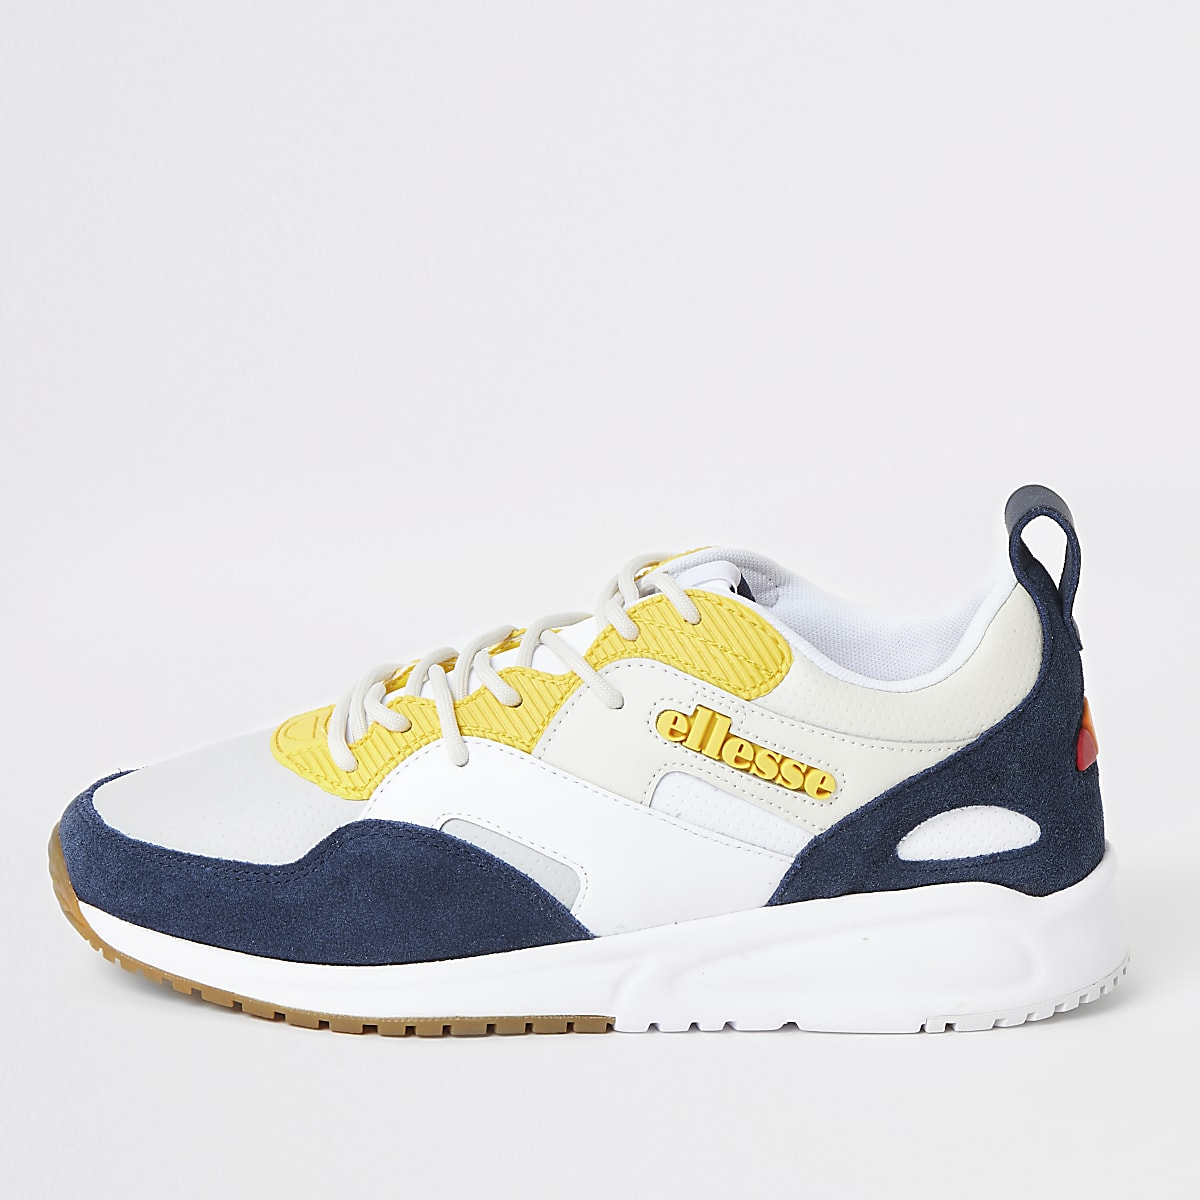 Ellesse white Potenza Lunar leather sneakers